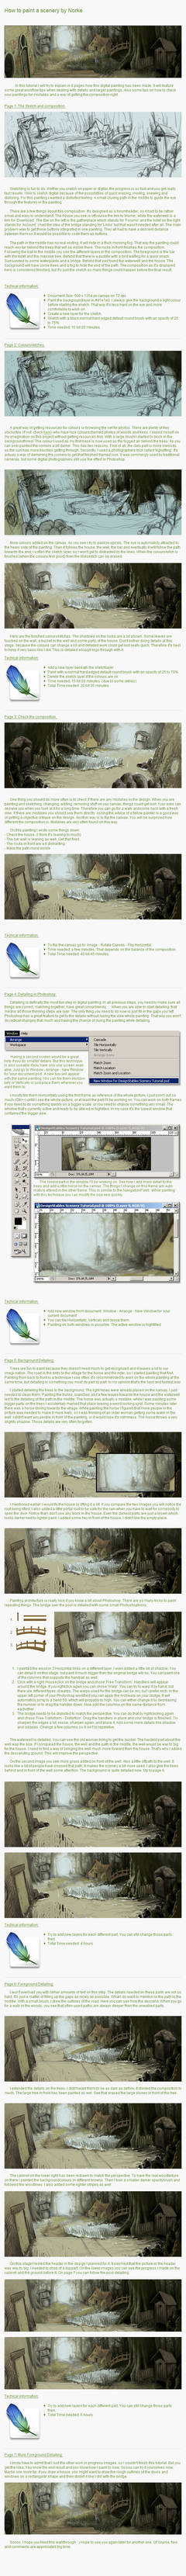 How To Make A Digital Painting